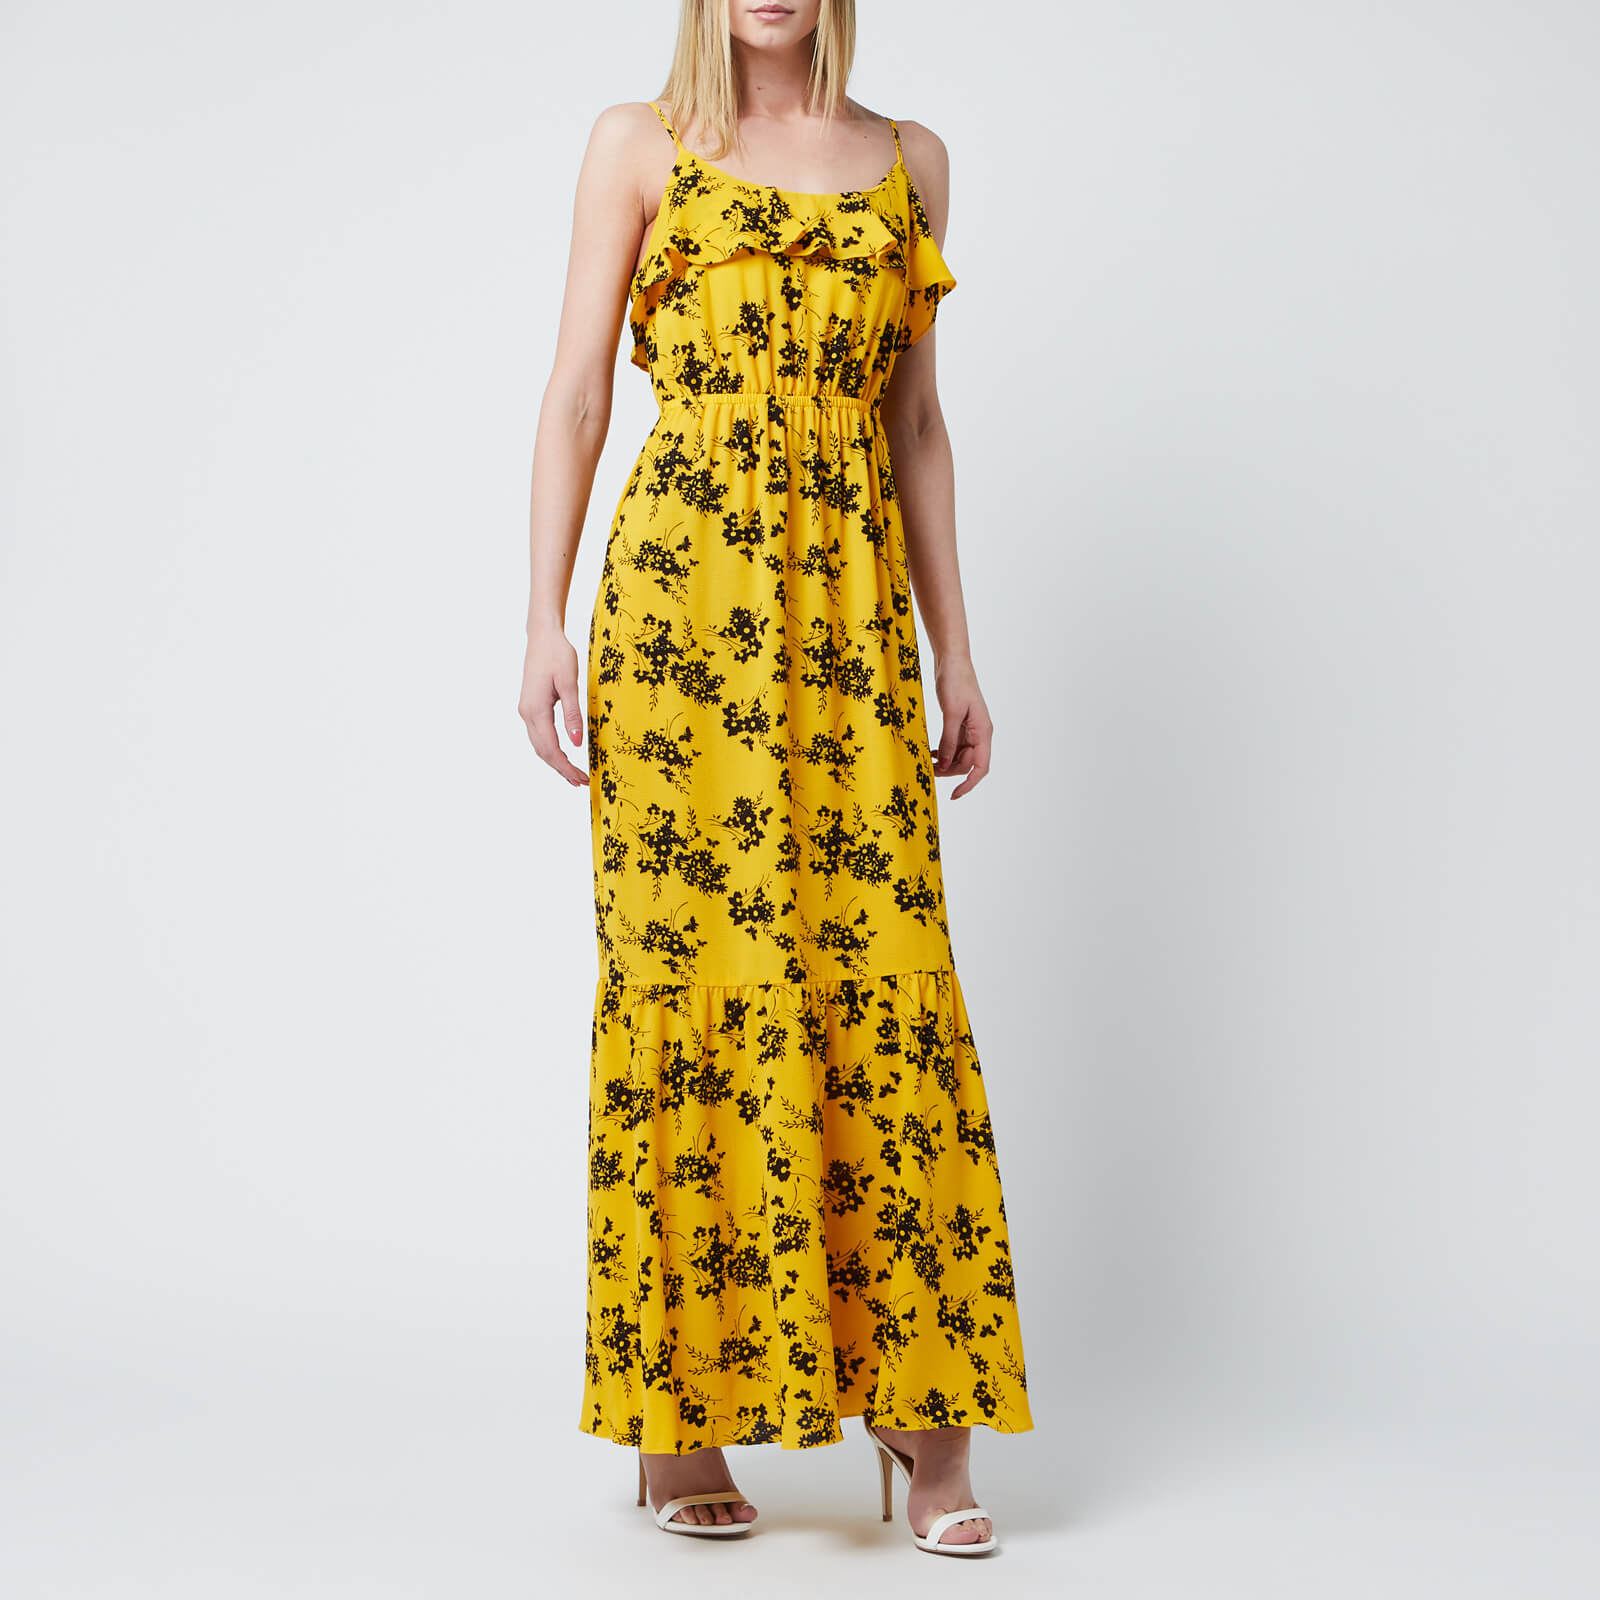 41d23884b2 MICHAEL MICHAEL KORS Women s Bold Botanical Dress - Golden Yellow Black Womens  Clothing